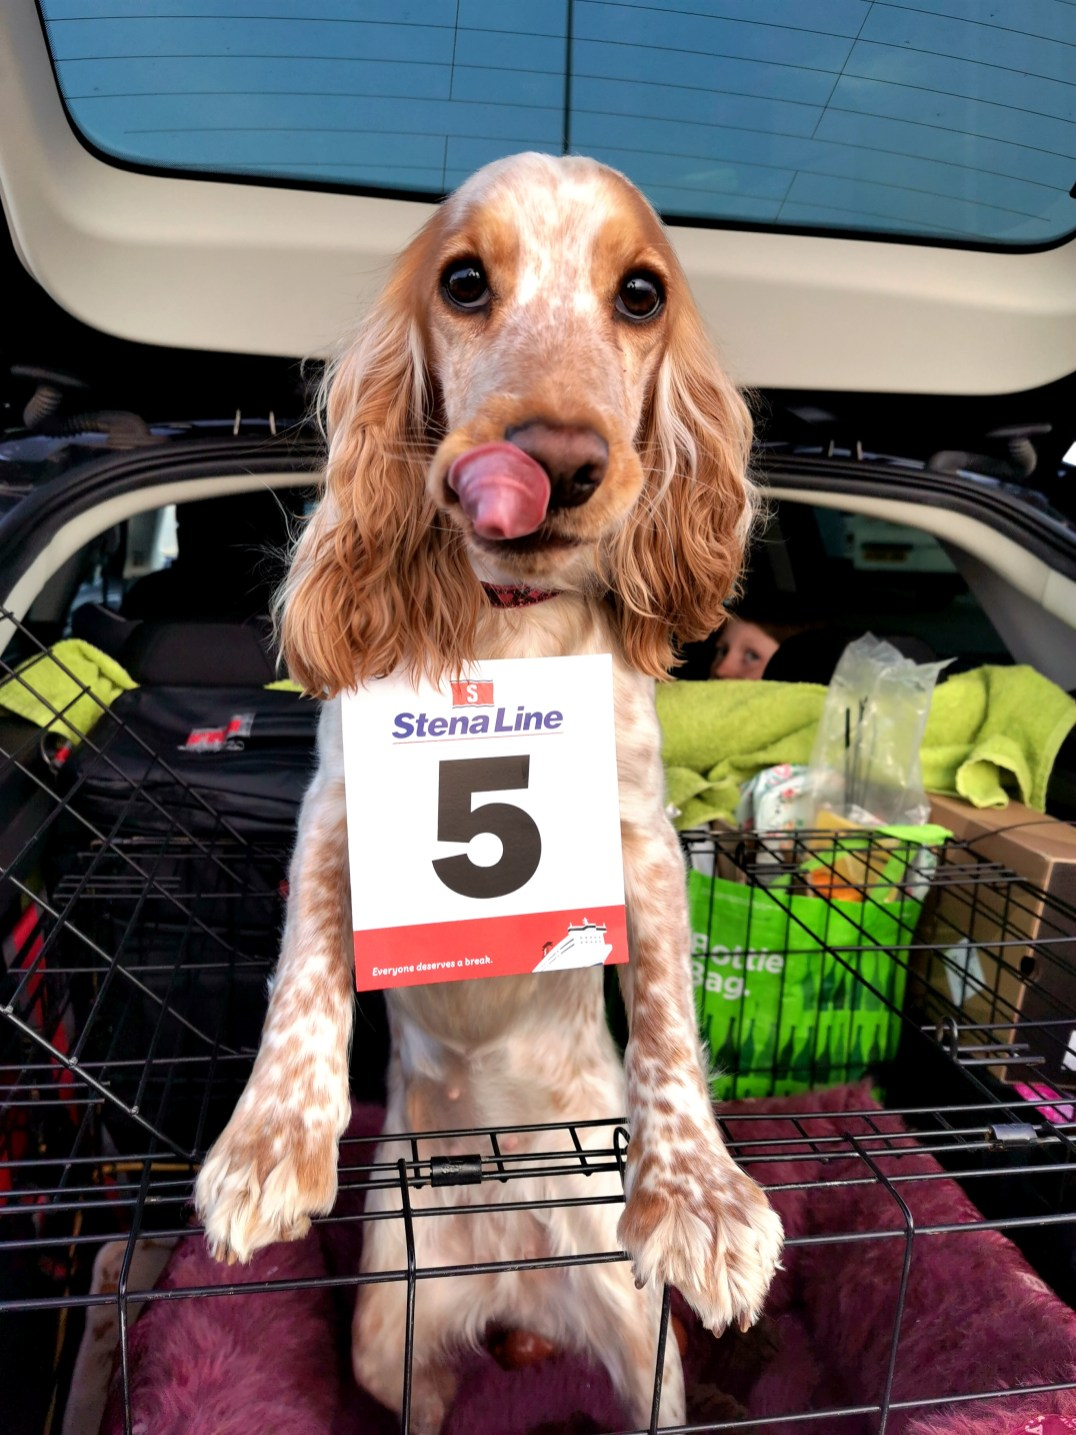 Rosie ready to board the Stena Line Superfast X ferry